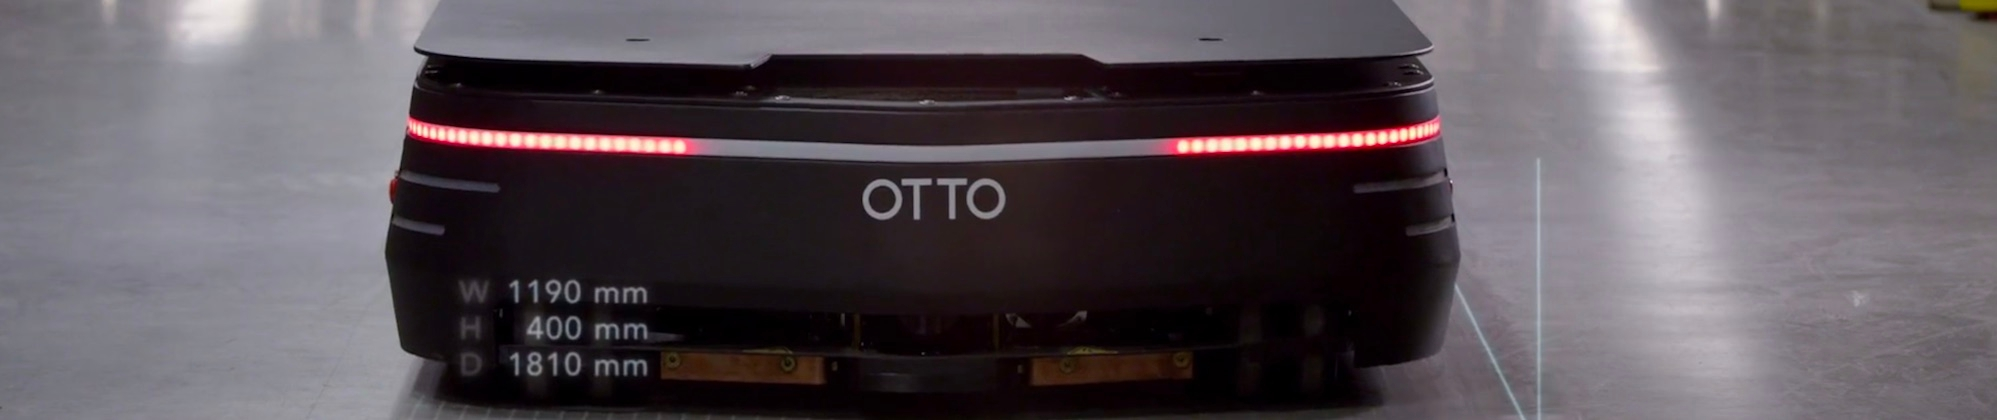 OTTO Motors: Using the Elastic Stack to Expand the IoT